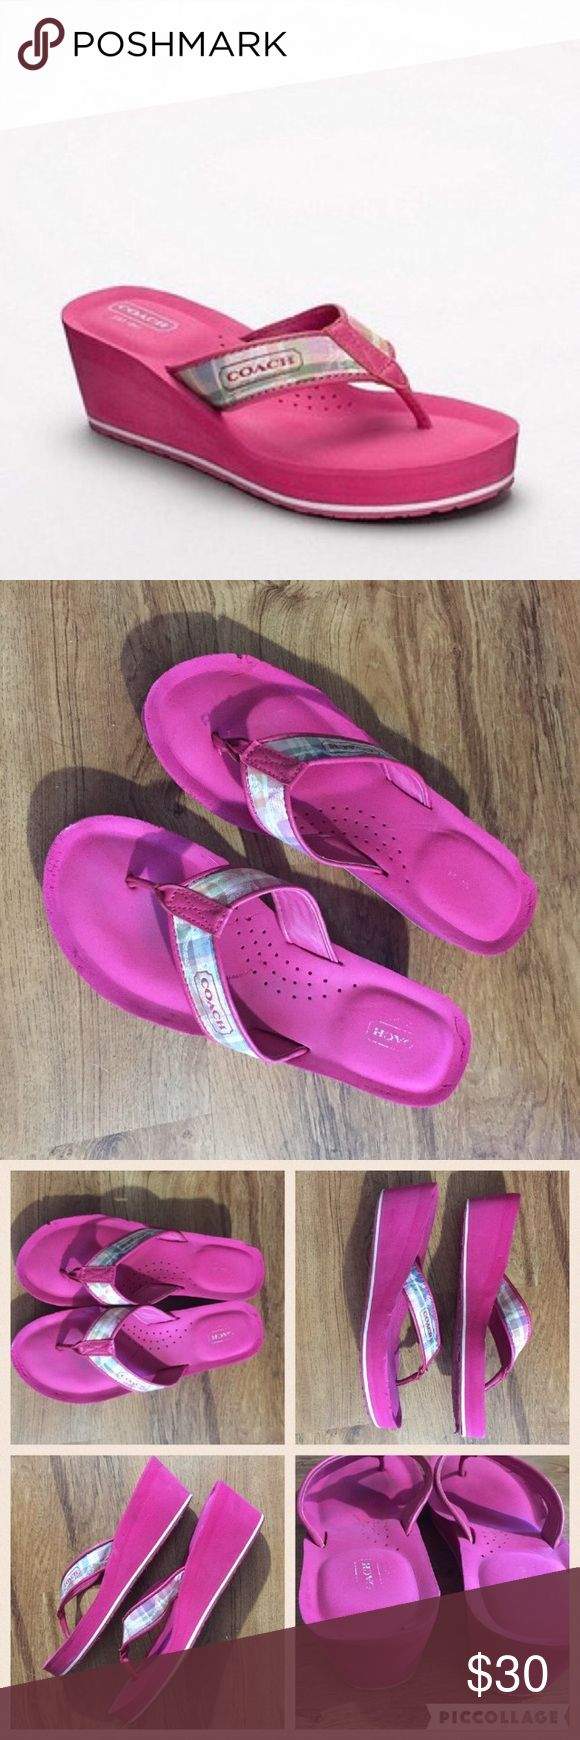 """Coach """"Jaicee"""" Hot Pink Wedge Thong Sandals Coach """"Jaicee"""" pink wedge sandals. They do have some flaws. There are knicks in the rubber, mostly around the toes, and a few small spots on the heels. Perfect for the pool or beach in the summertime. Size 9B.  #coach #jaicee #wedge #sandal #pink #logo #highend #colorful #bright #designer #shoes #beach #pool #vacay #vacation #springbreak #punkydoodle  No modeling Smoke free home I do discount bundles Coach Shoes Sandals"""